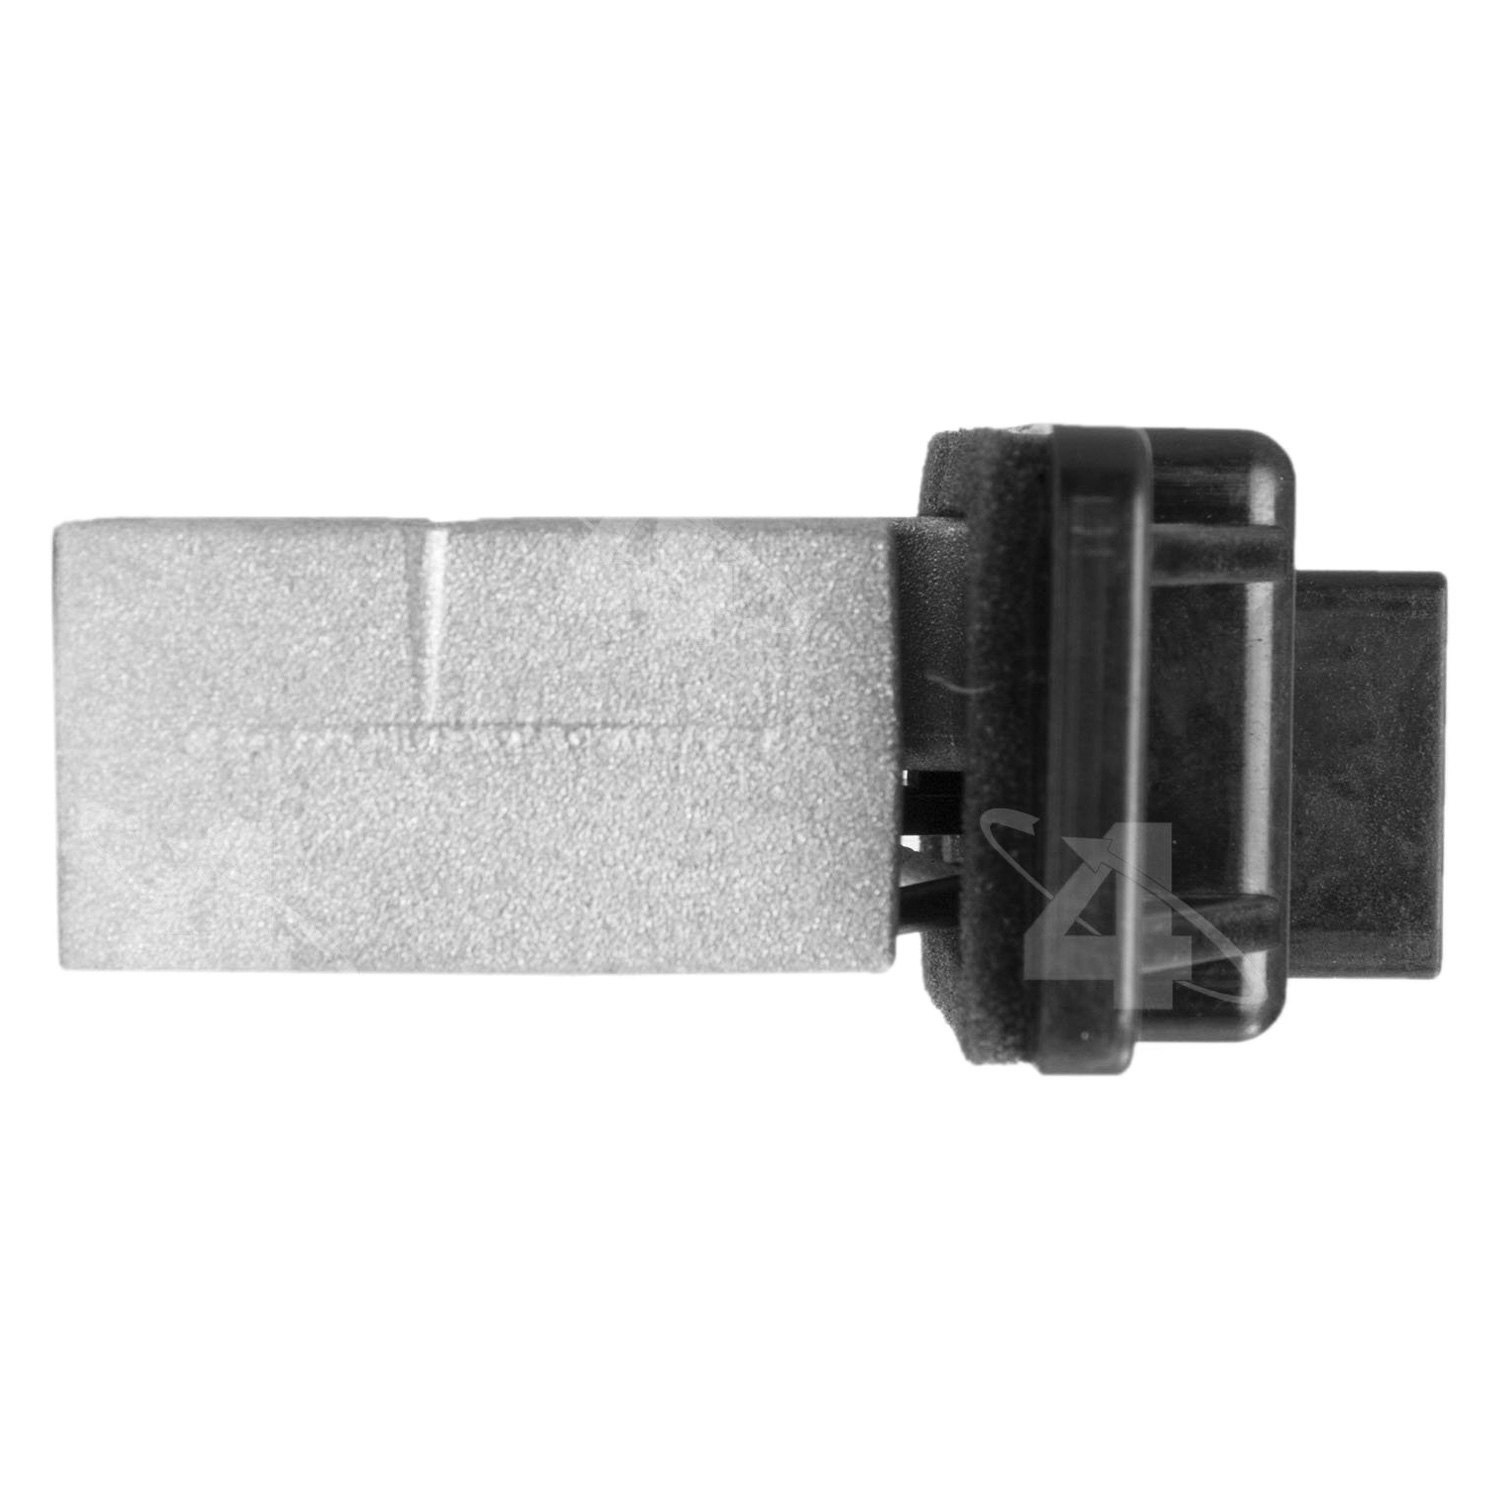 Hvac blower motor resistor part 20351 for York furnace blower motor replacement cost